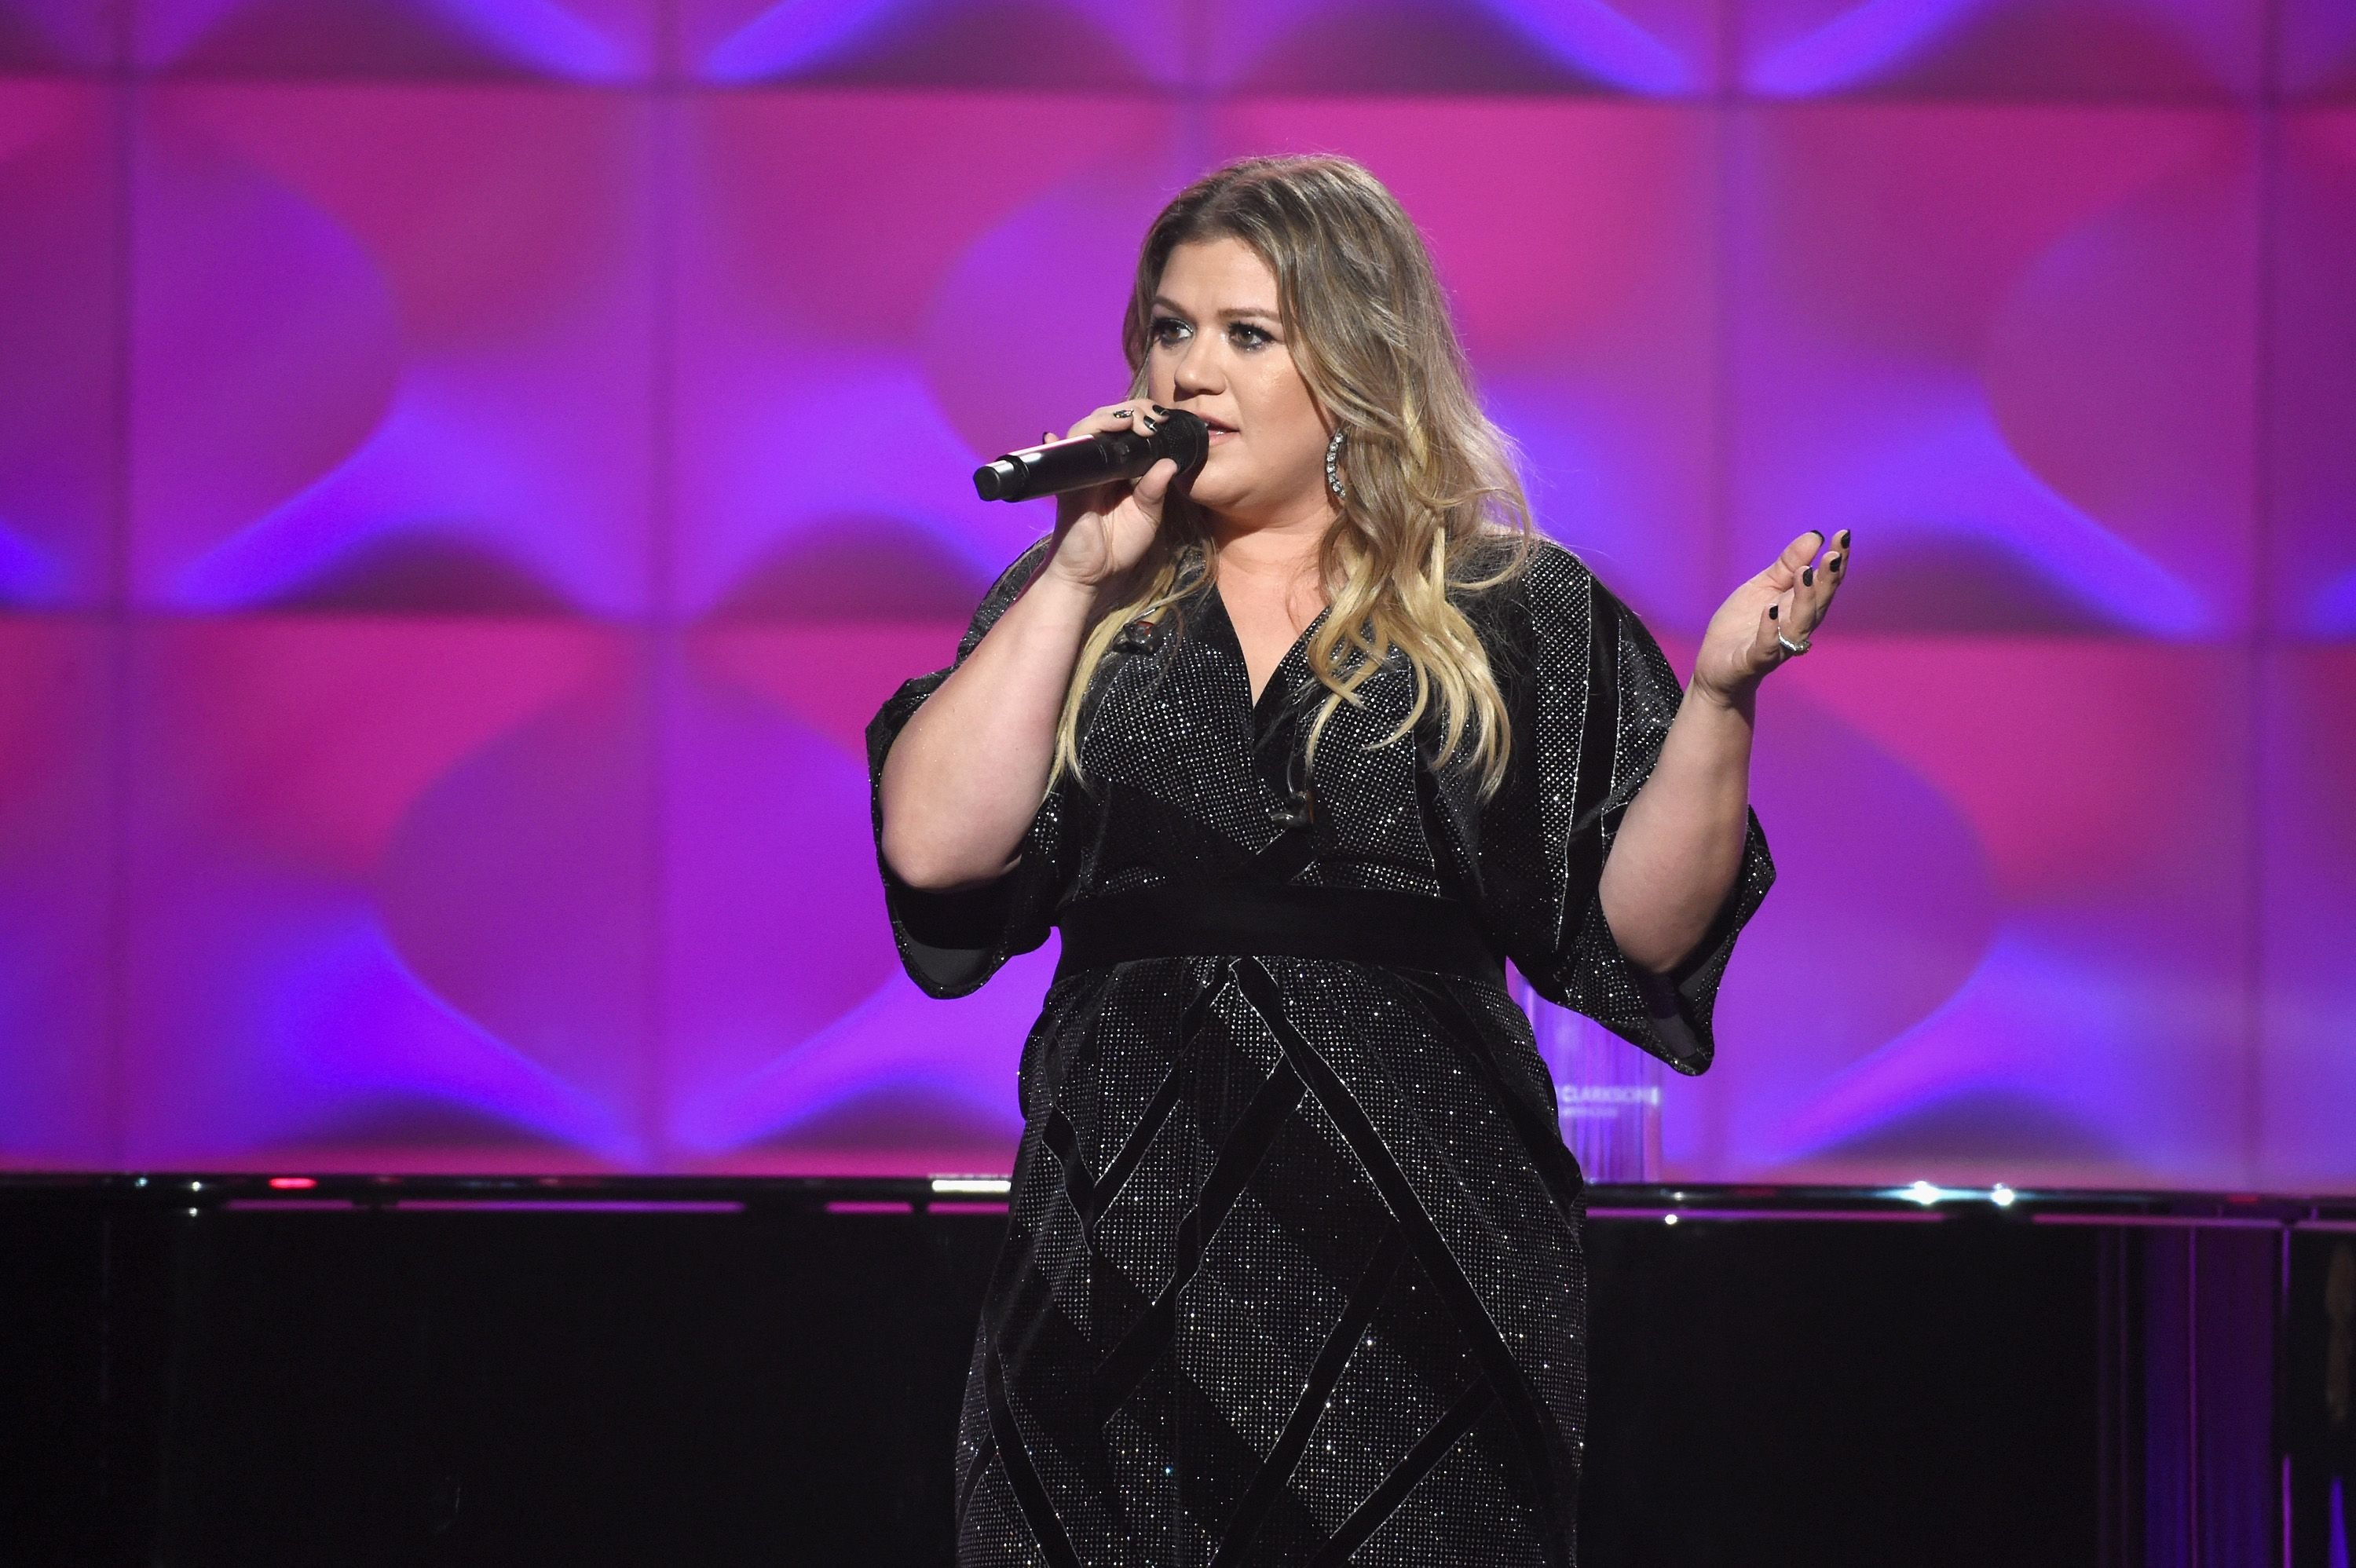 Kelly Clarkson during the Billboard Women In Music 2017 at The Ray Dolby Ballroom at Hollywood & Highland Center on November 30, 2017 in Hollywood, California. | Source: Getty Images